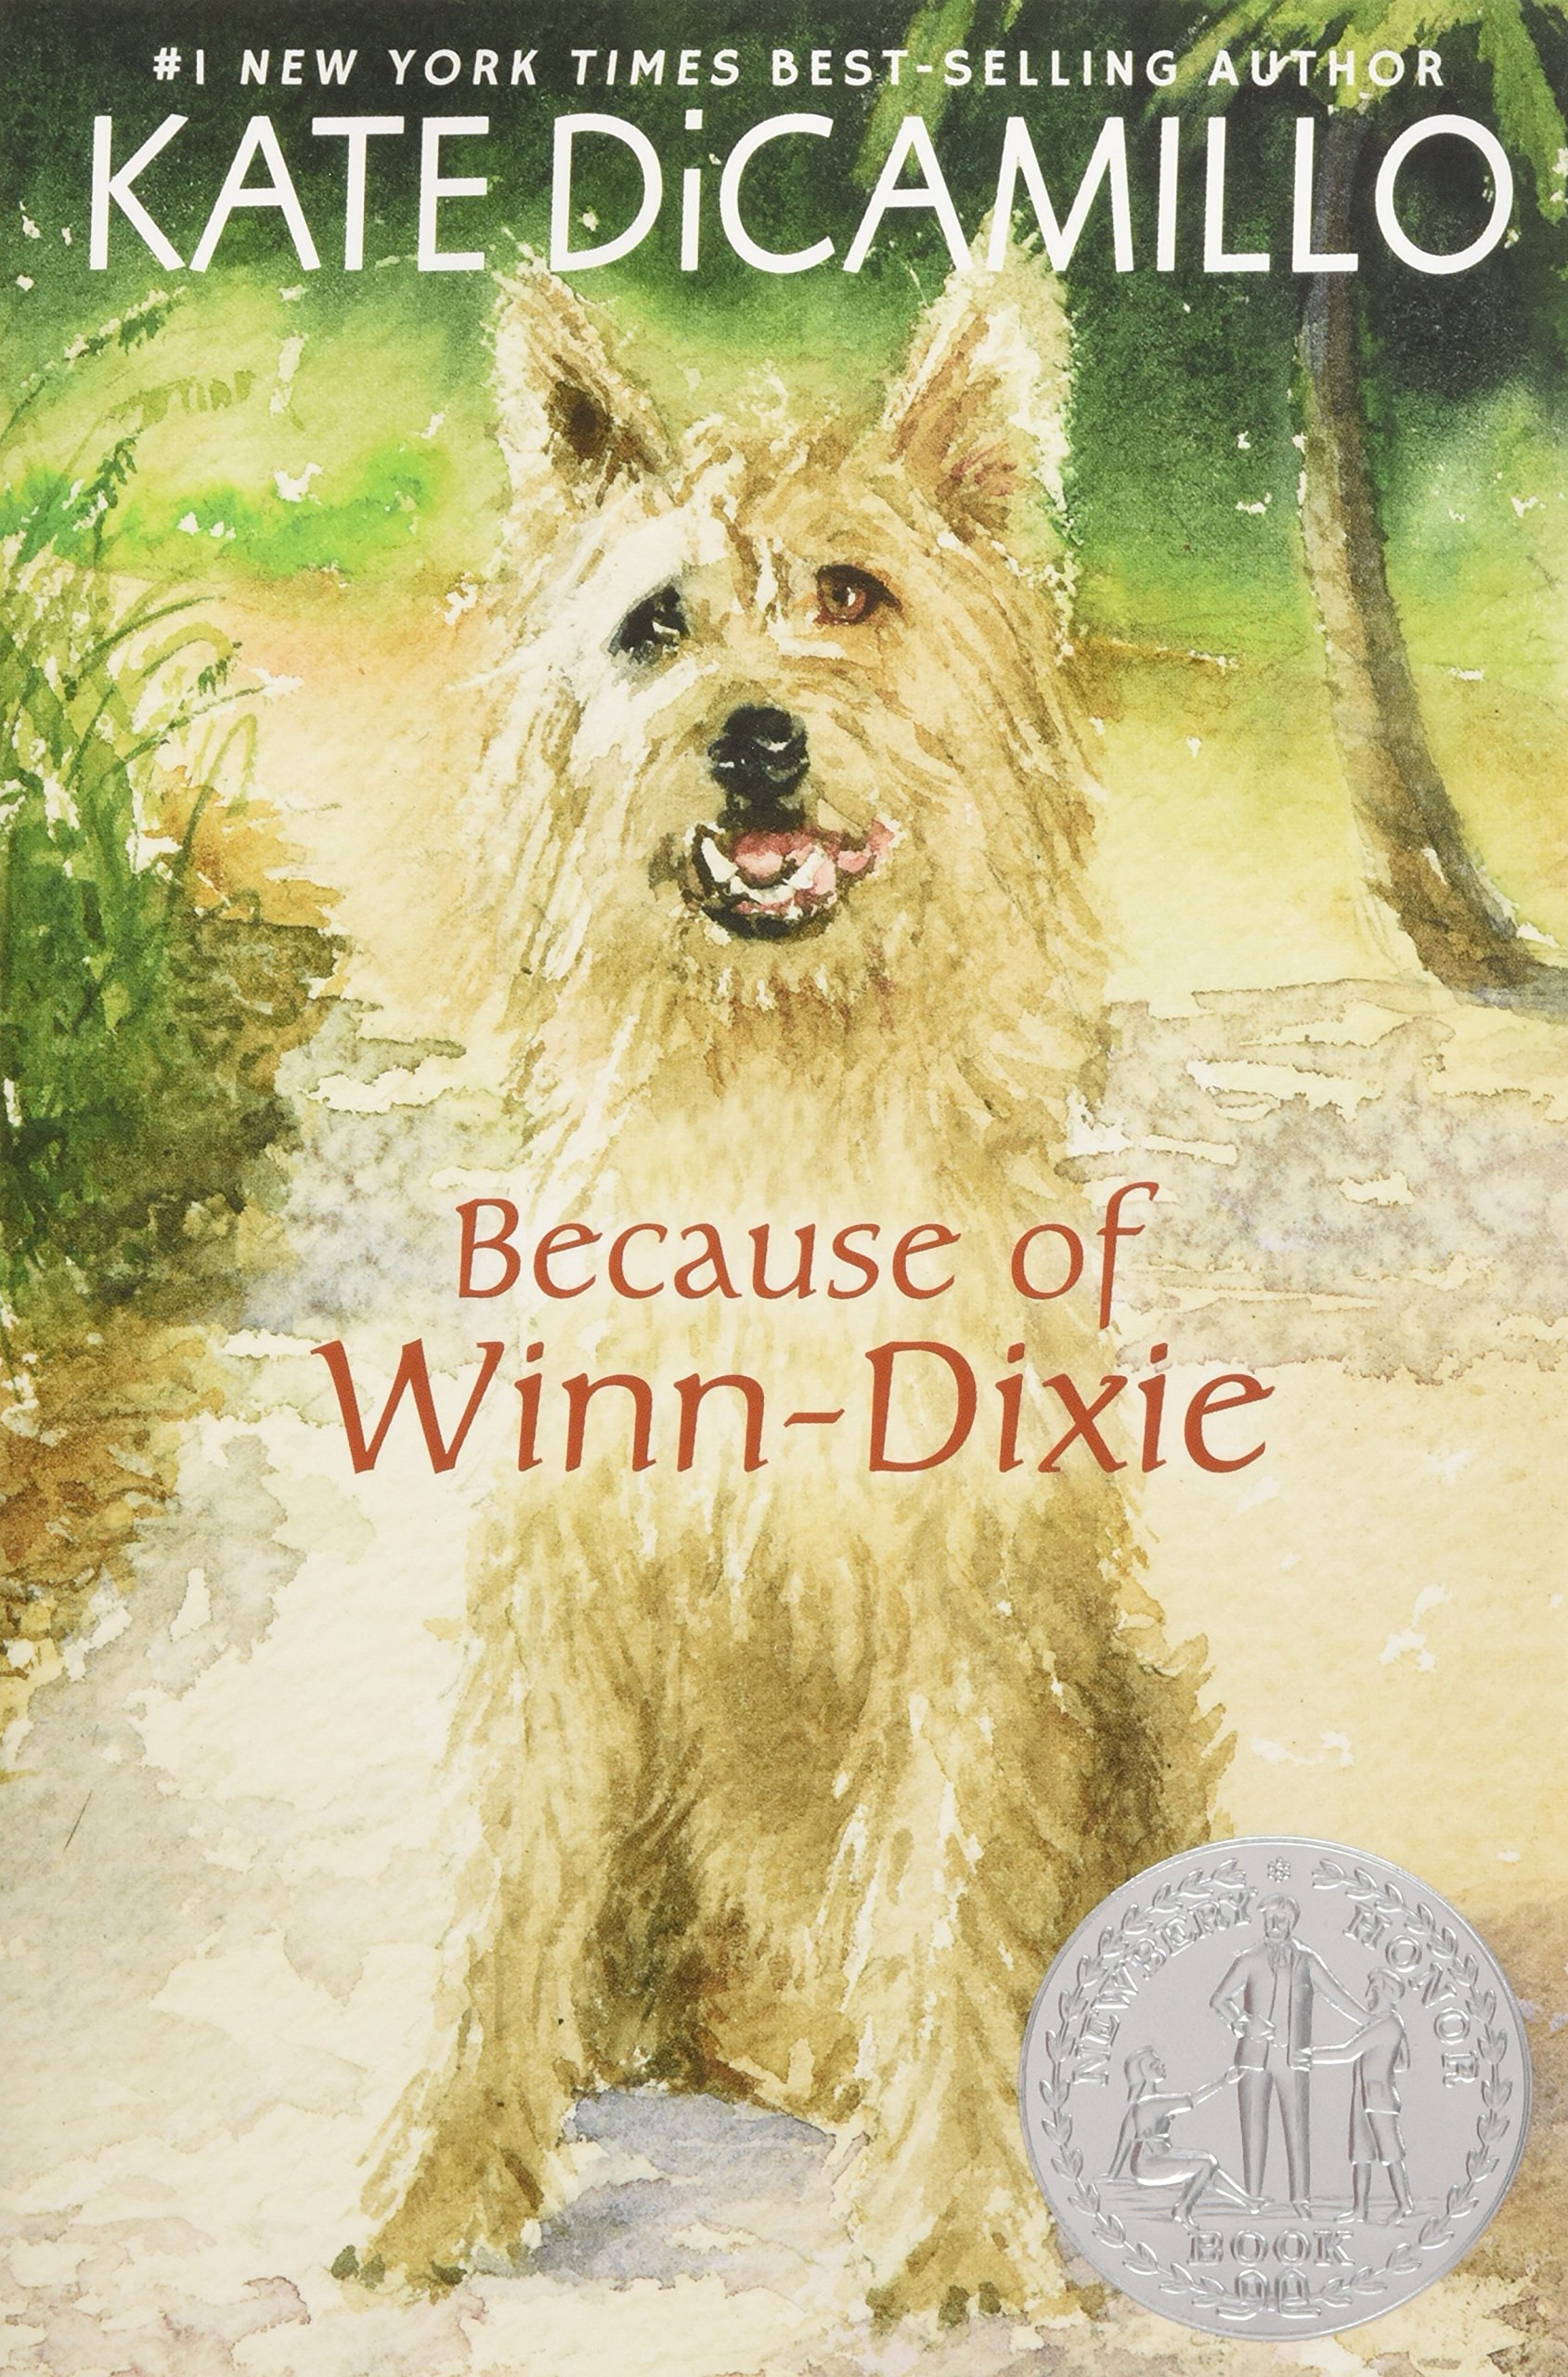 Review of winn dixie free appliances - Because of winn dixie kate dicamillo 9780763680862 amazon com books